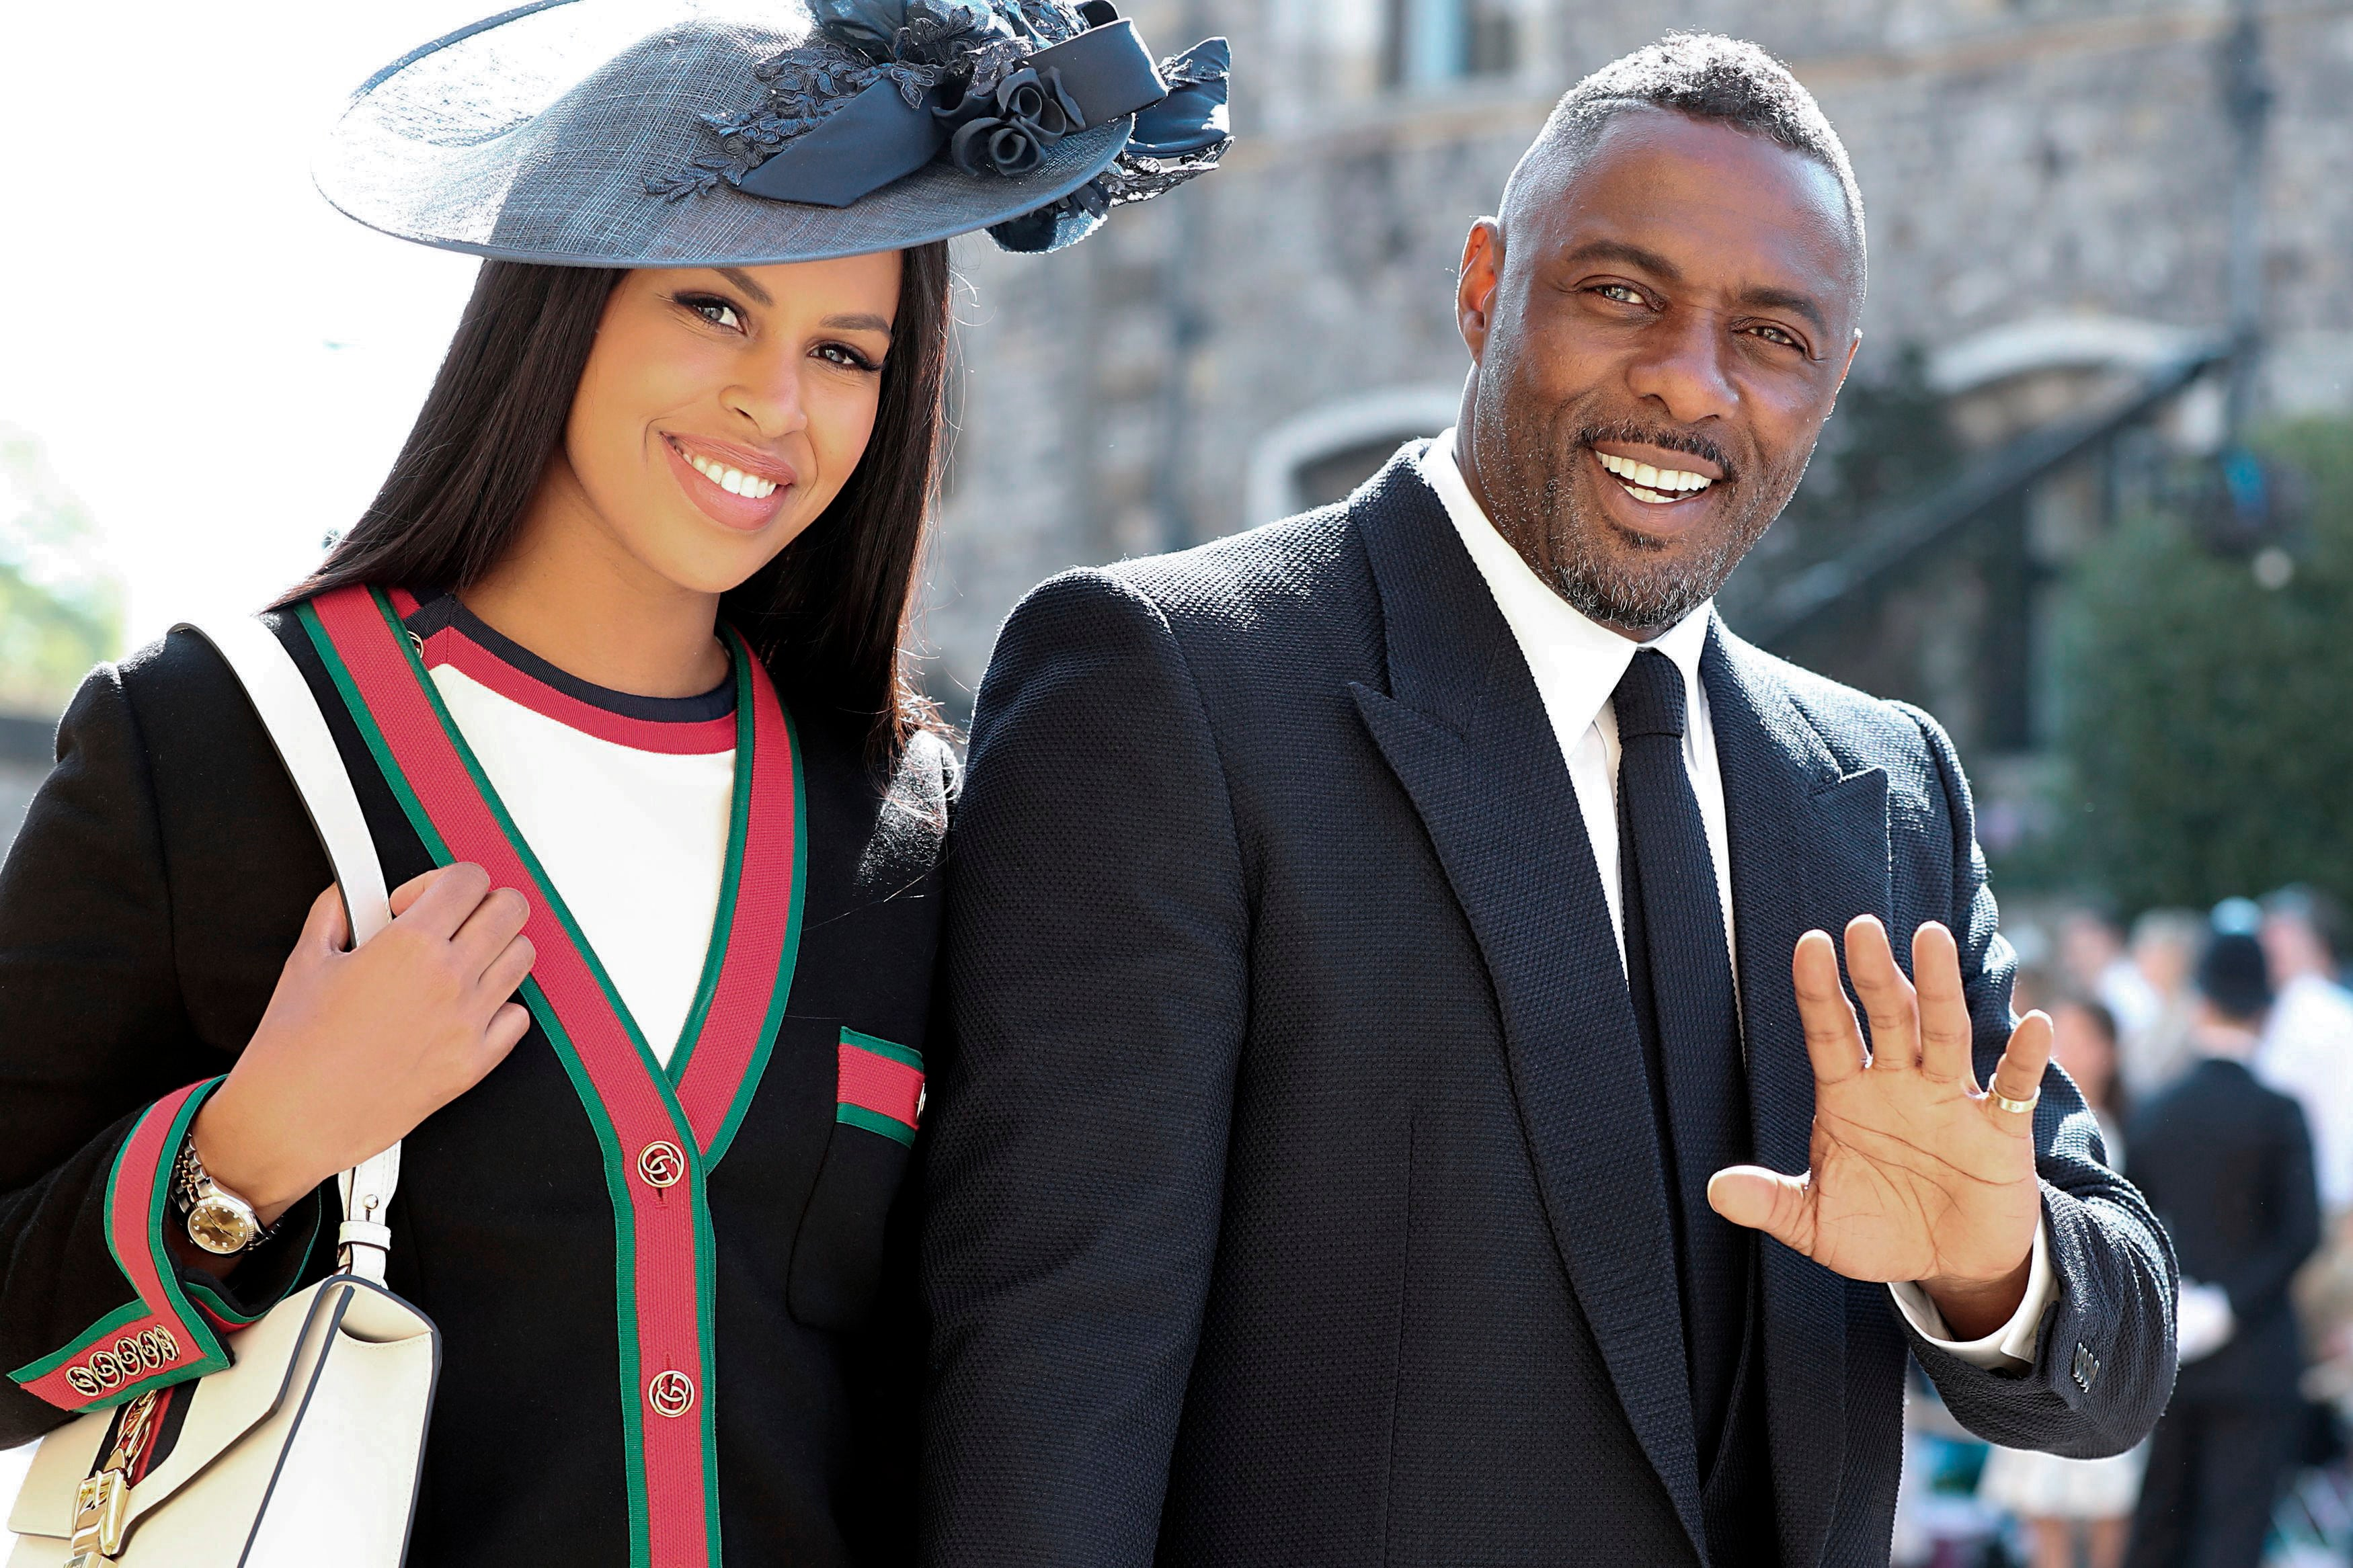 The Royal Wedding Celebrity Guest List Was Filled With Black Excellence